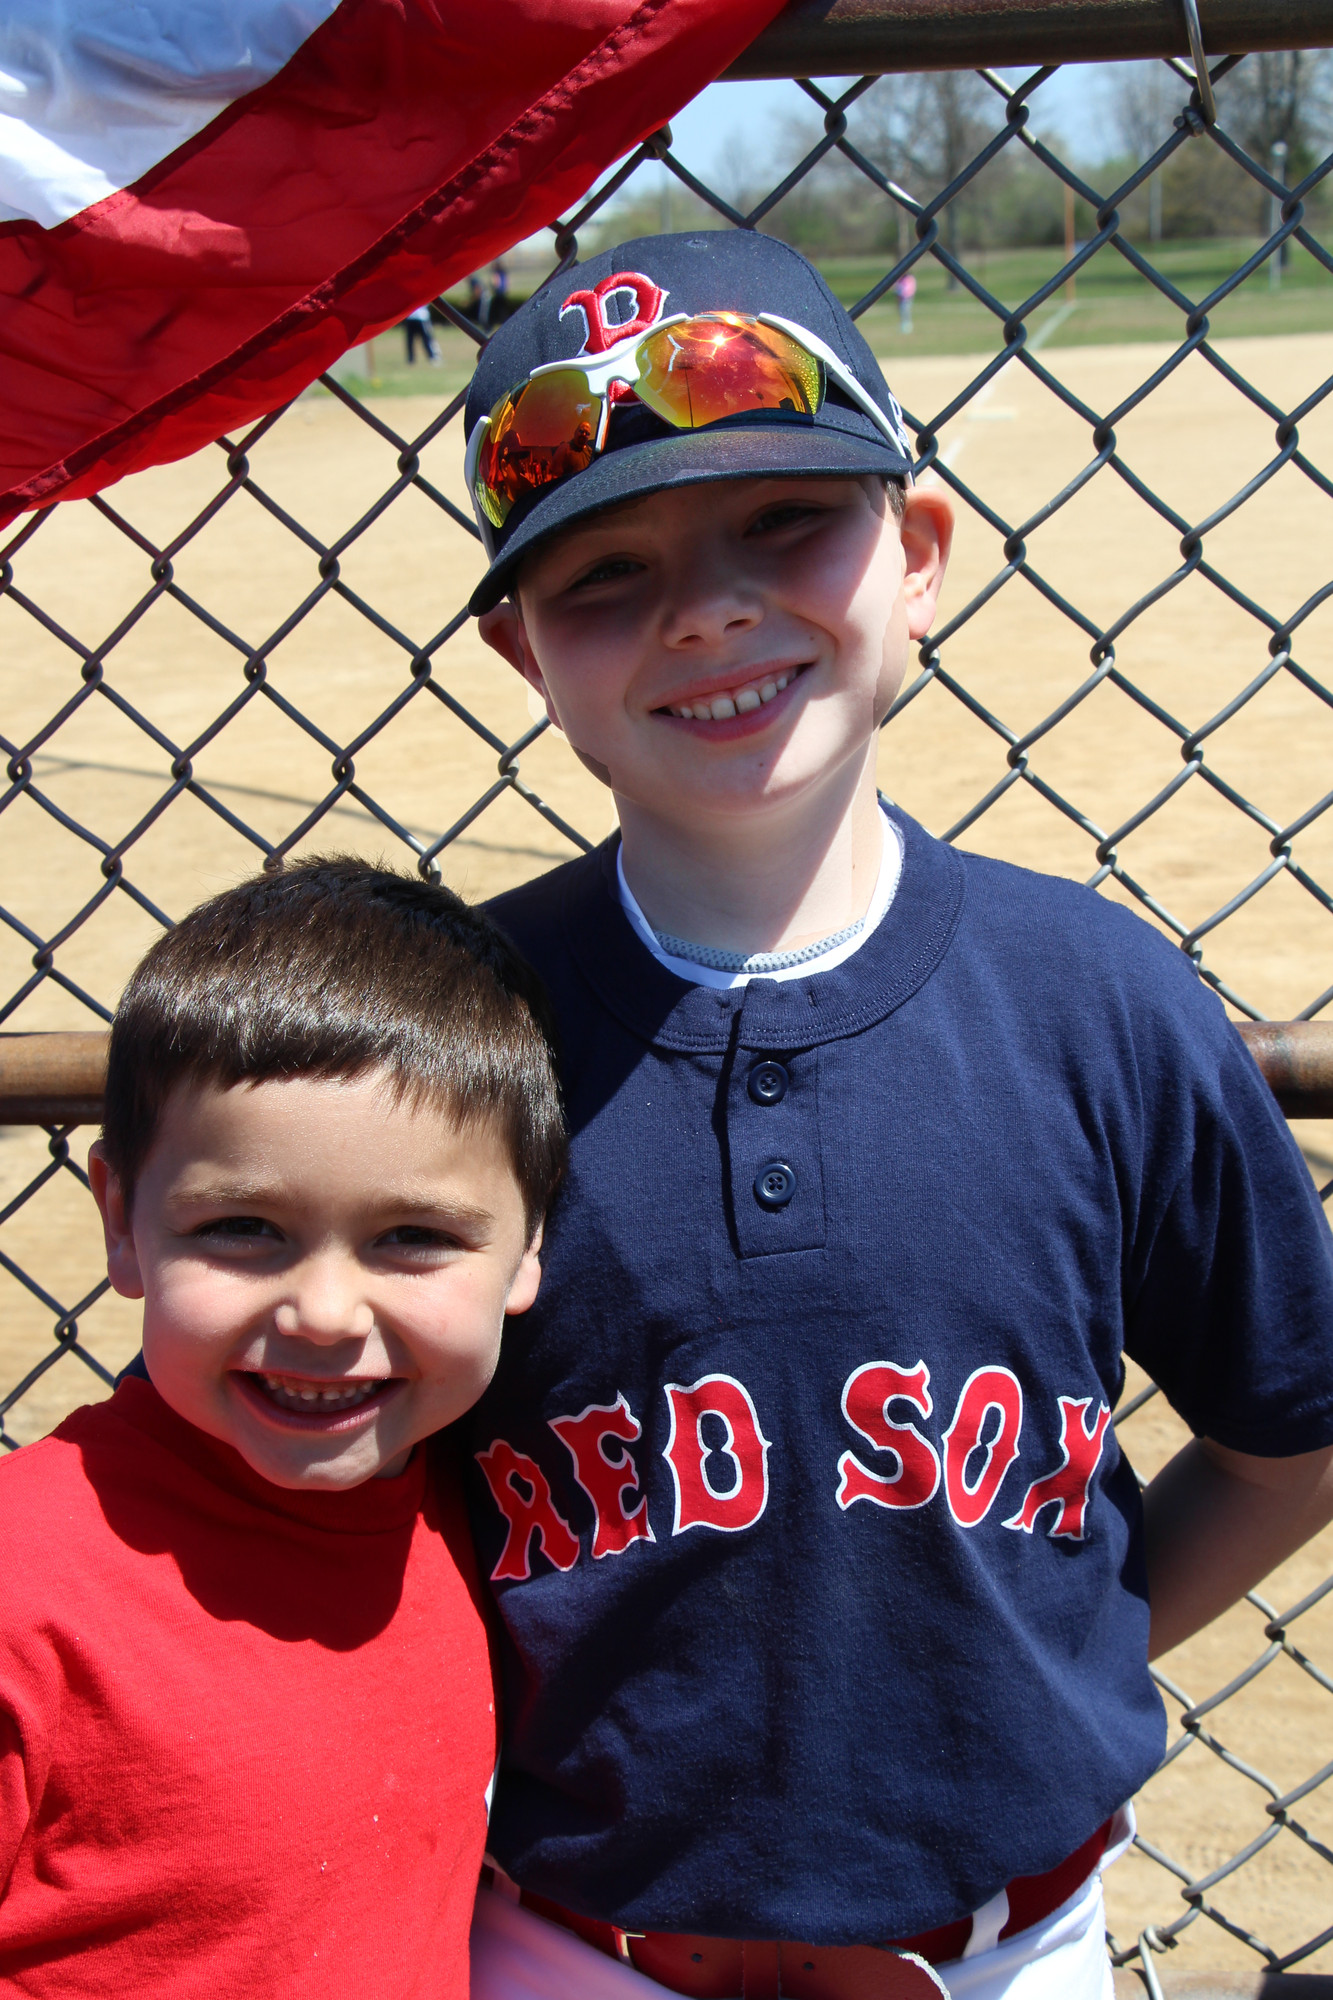 The Carney Brothers Ryan, 7, of the Reds  and John Jr., 10, who plays for the Red Sox were all smiles.